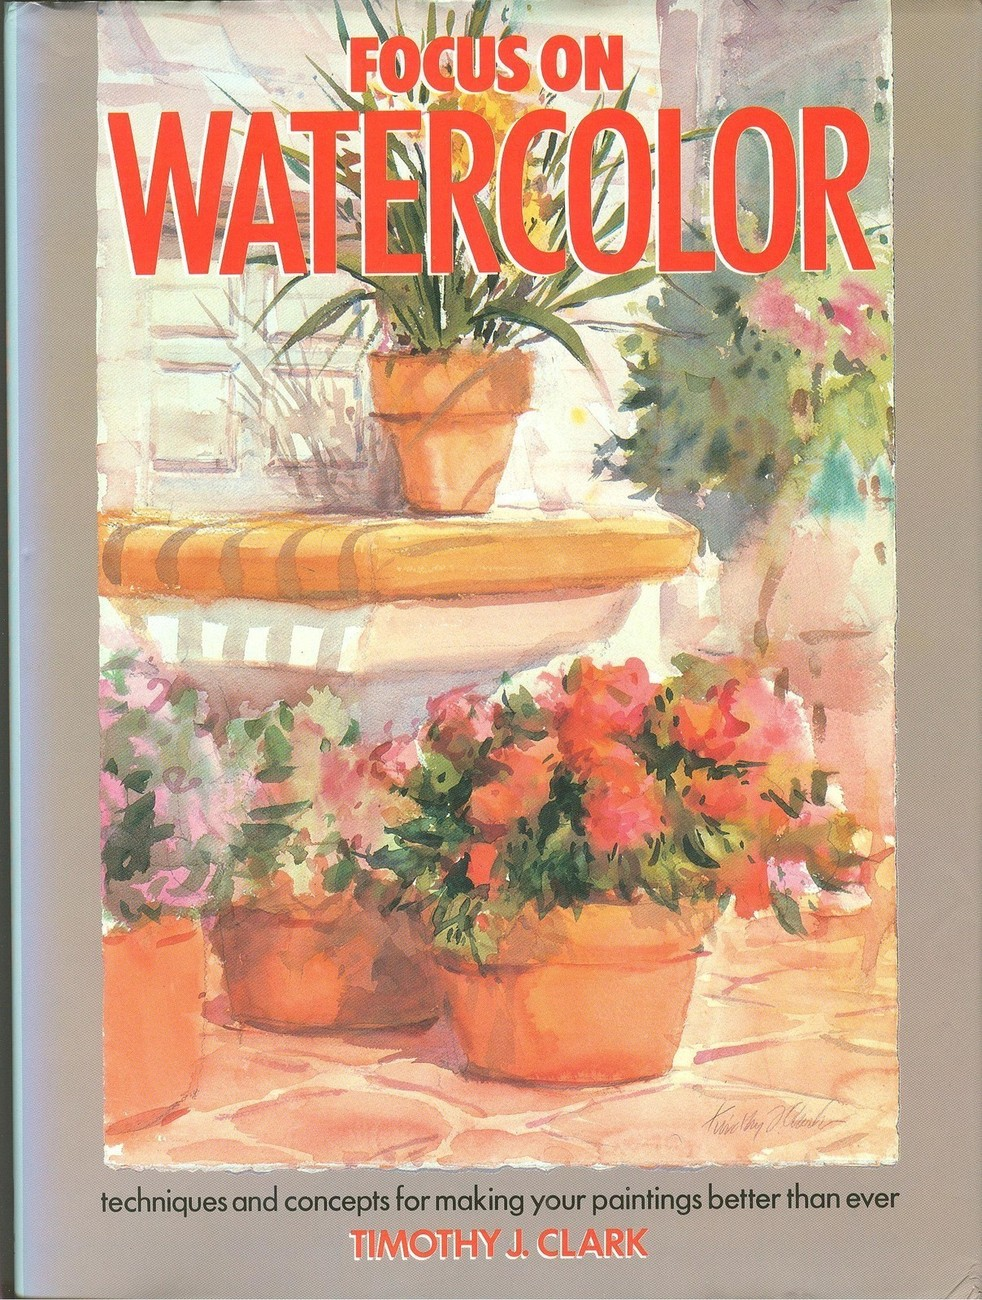 Focus on Watercolor by Timothy J.Clark;Techniques & Concepts for Better Painting